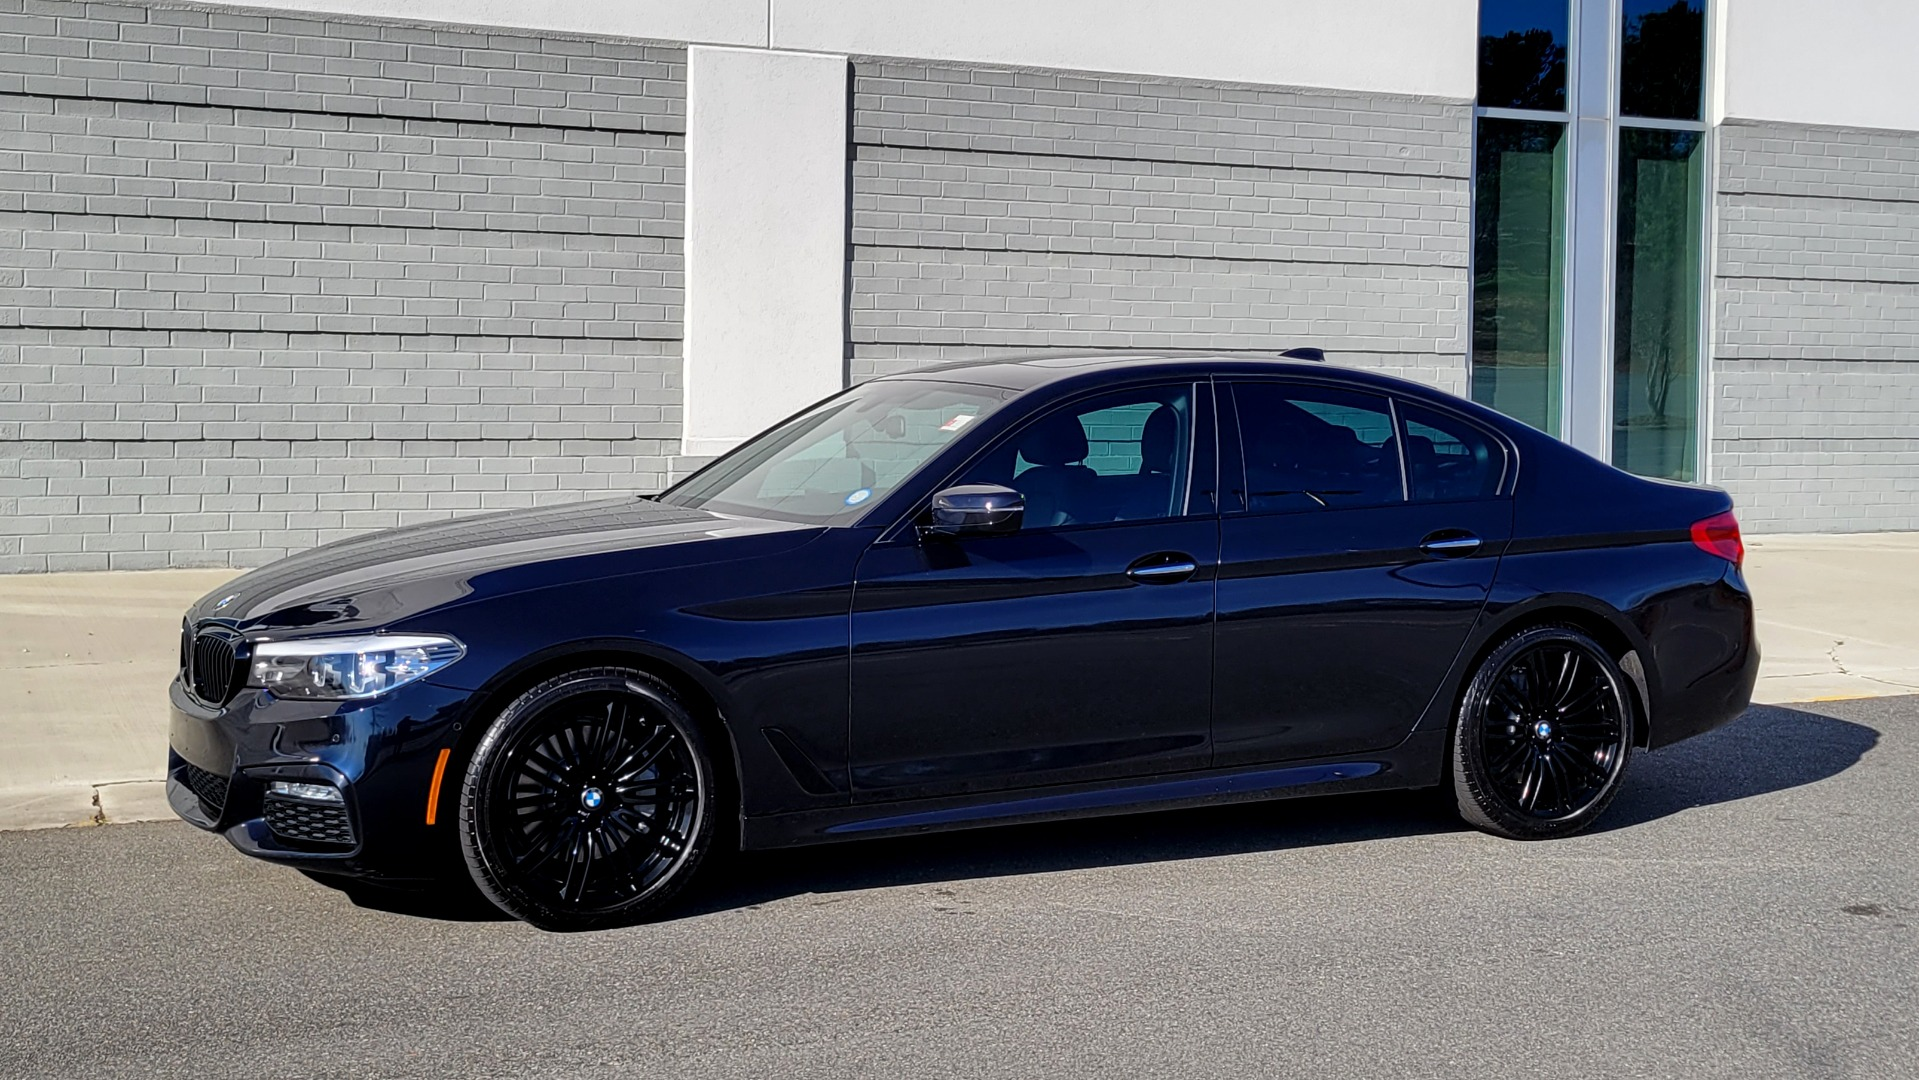 Used 2018 BMW 5 SERIES 540I XDRIVE / M-SPORT / NAV / WIFI / SUNROOF / REARVIEW for sale $36,773 at Formula Imports in Charlotte NC 28227 4